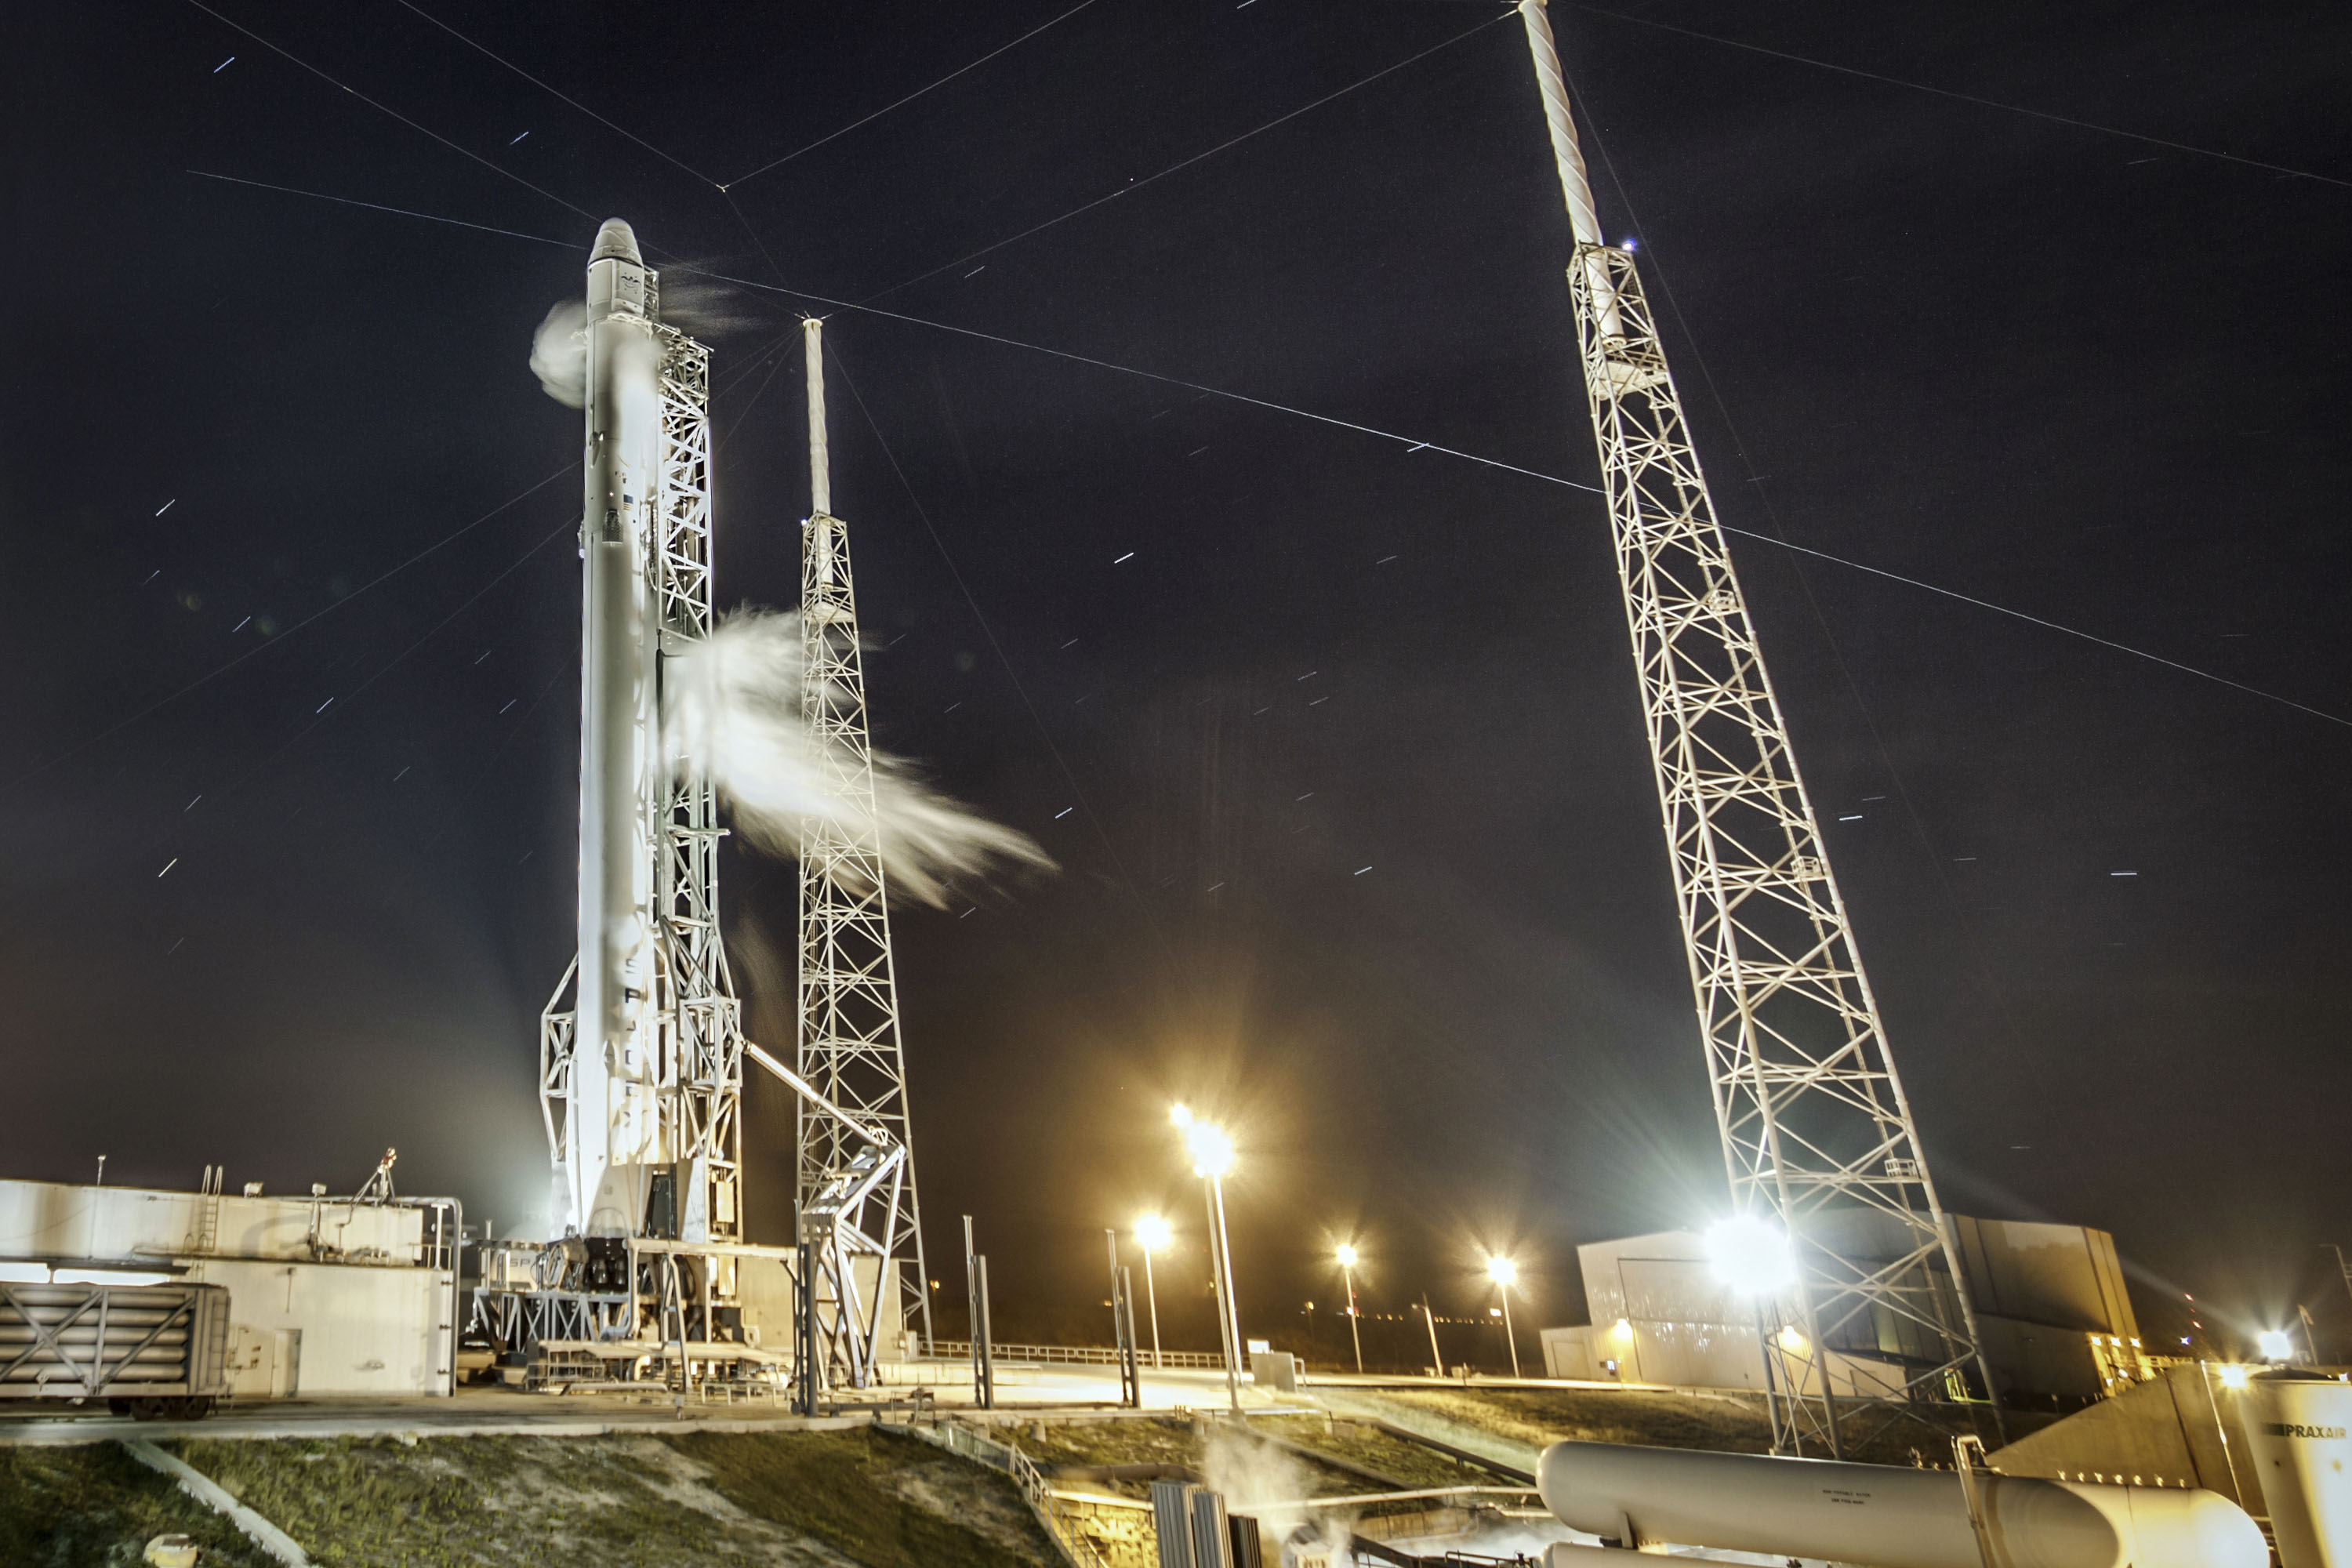 falcon 9 launch - photo #19